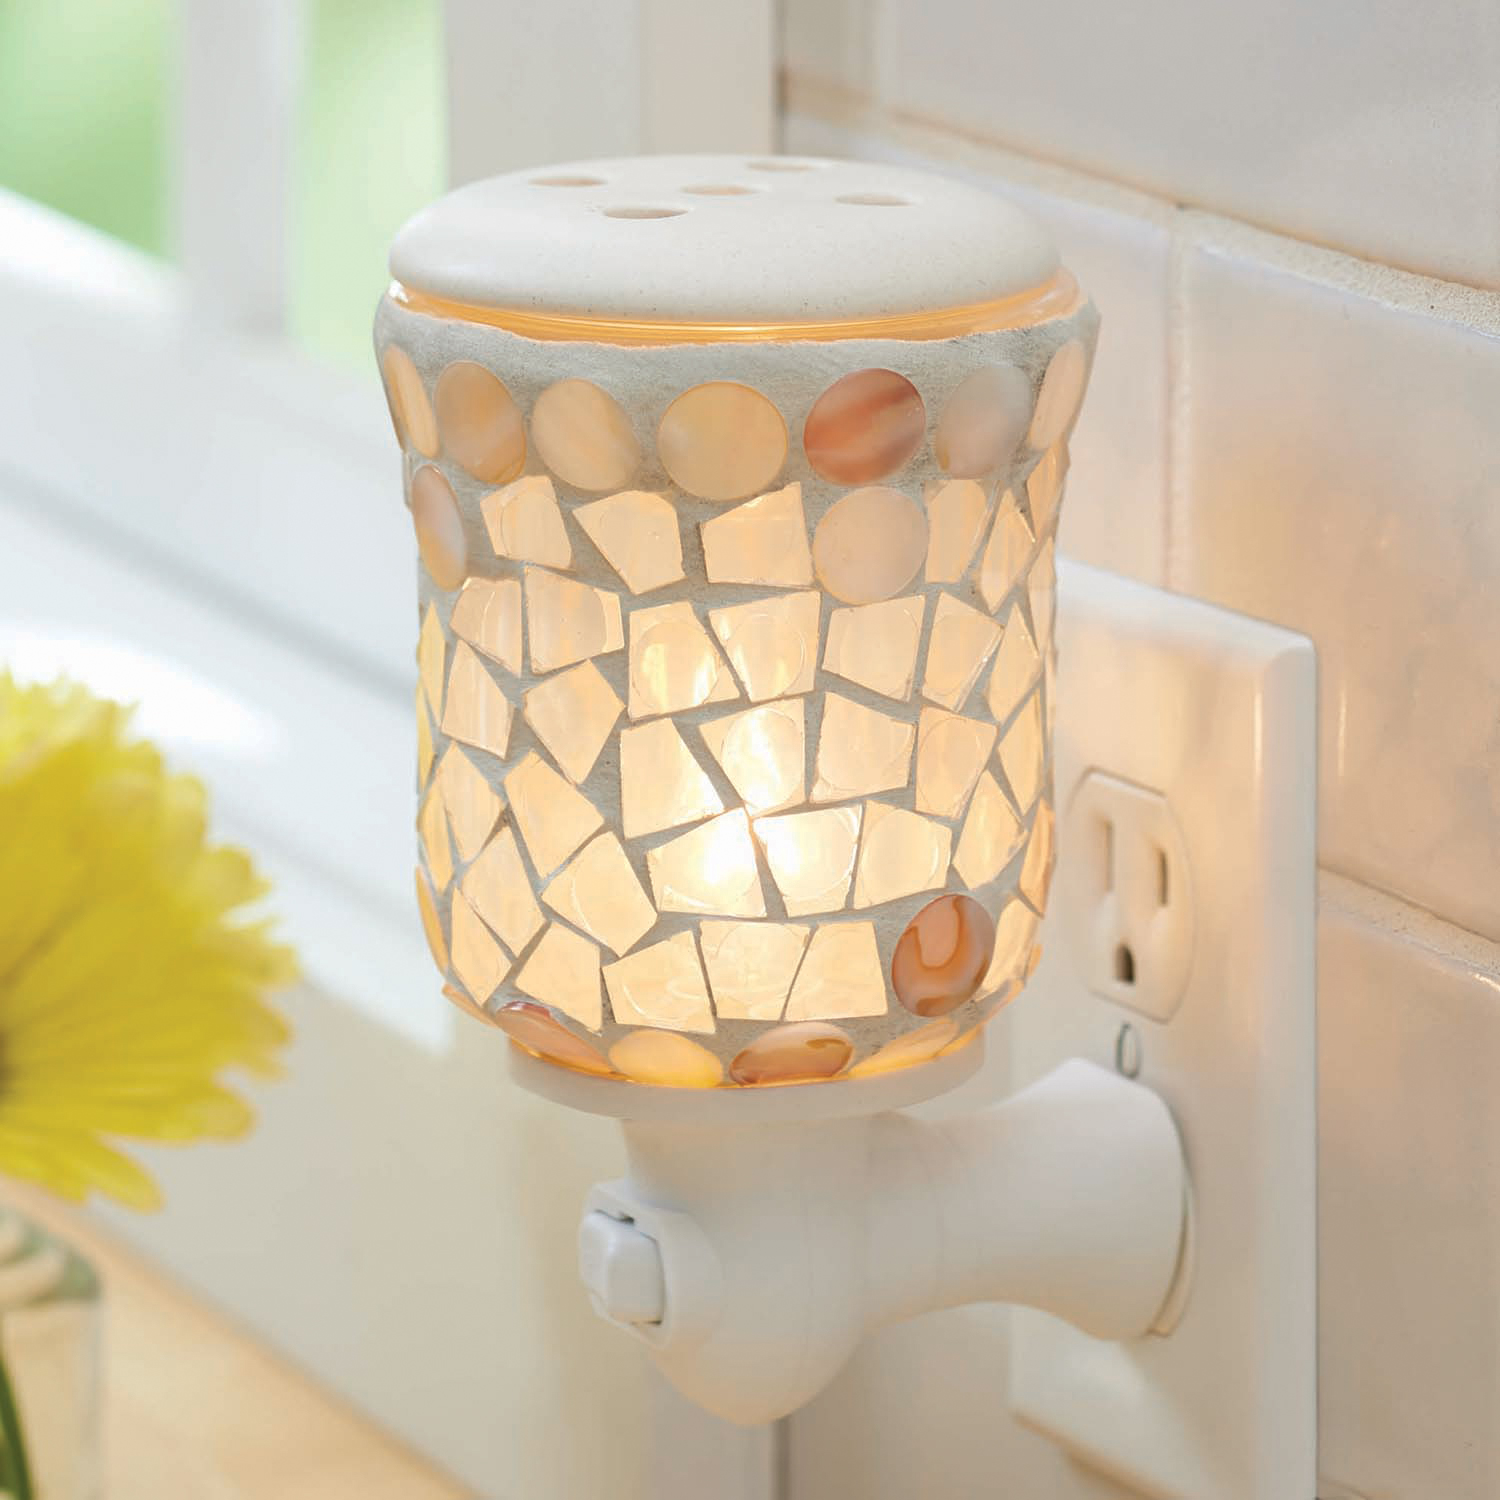 Wall Accent Scented Wax Warmer Multicolored: Better Homes & Gardens Mosaic Wall Accent Scented Wax